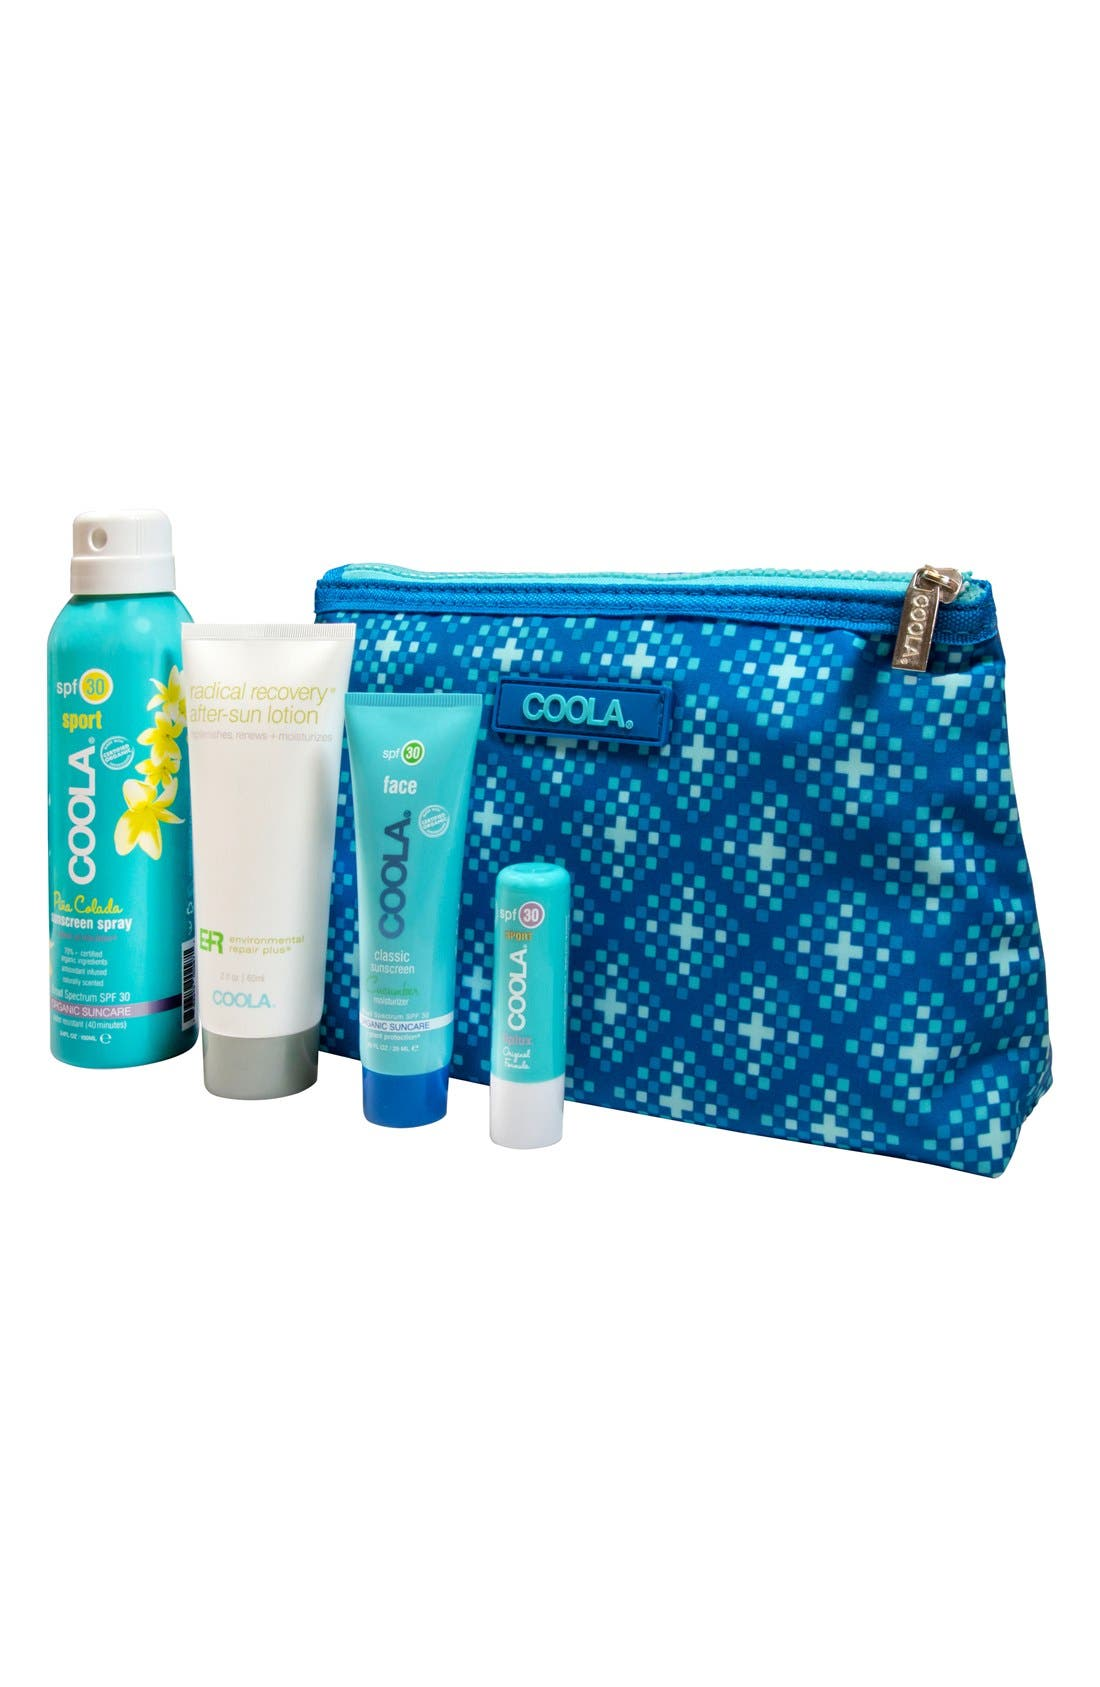 COOLA® Suncare Signature Travel Kit ($75 Value)